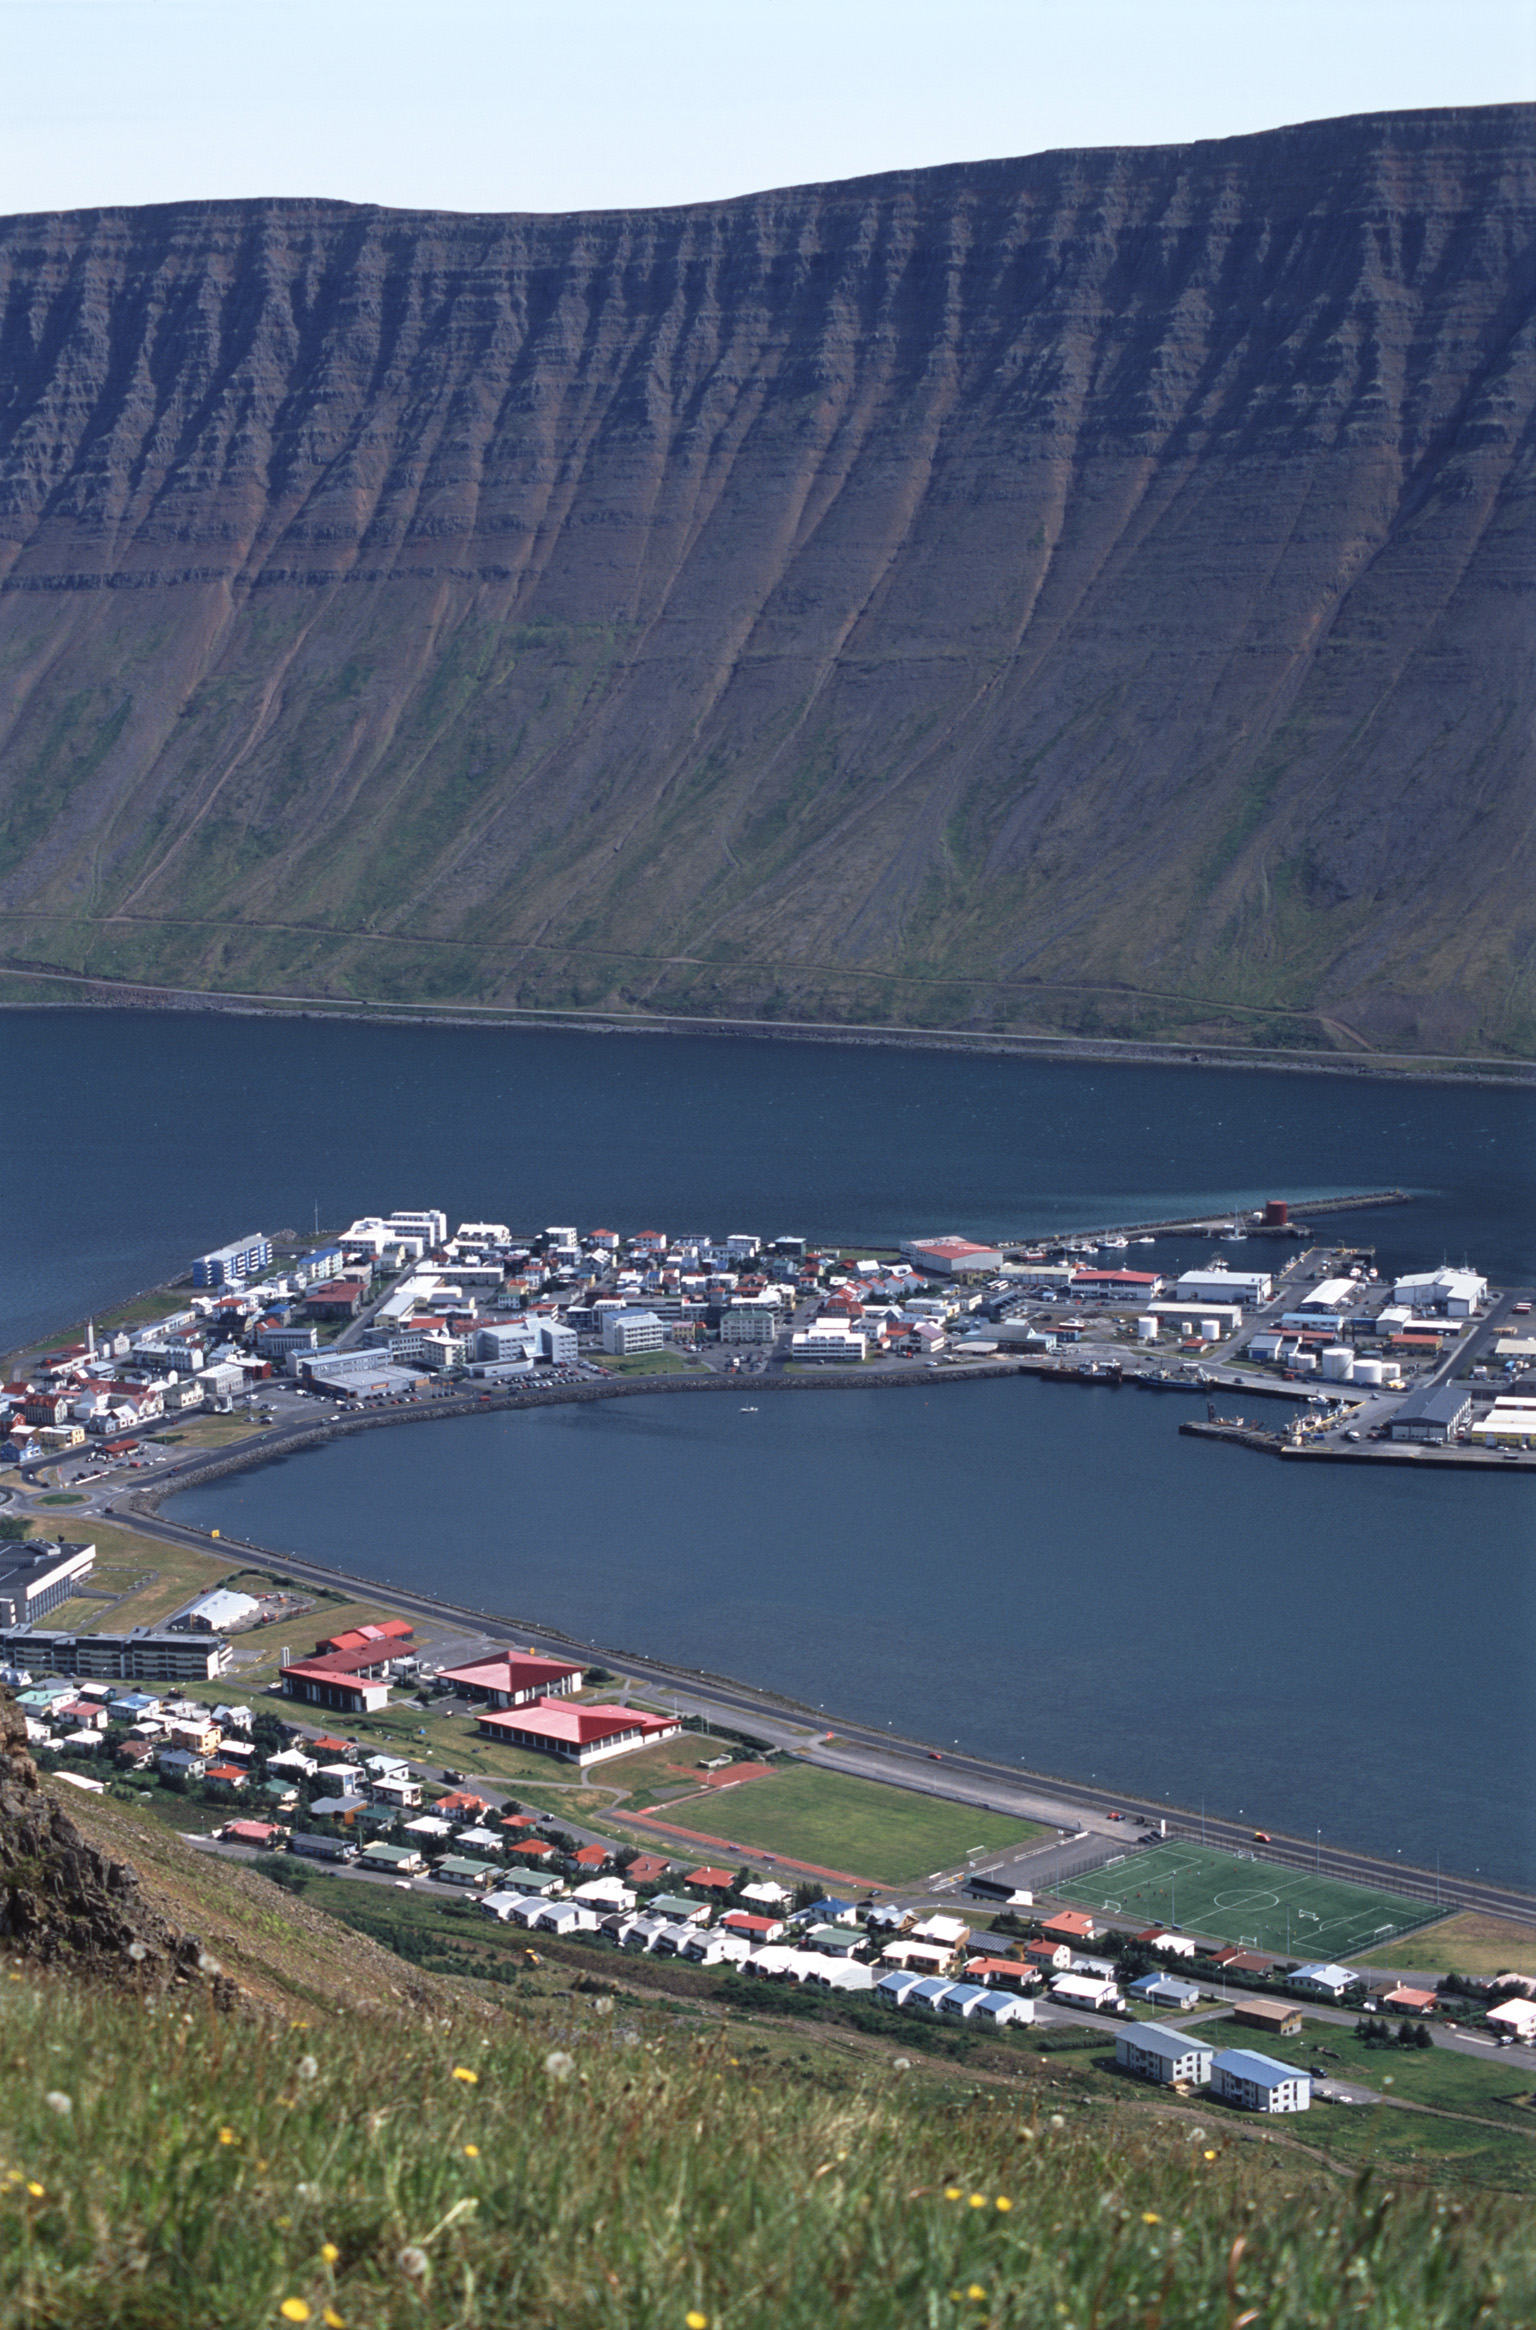 Scenic landscape aerial view of Isafjordur in Iceland, a remote fishing town in the fjords nesting under a volcanic mountain peak at the edge of a bay